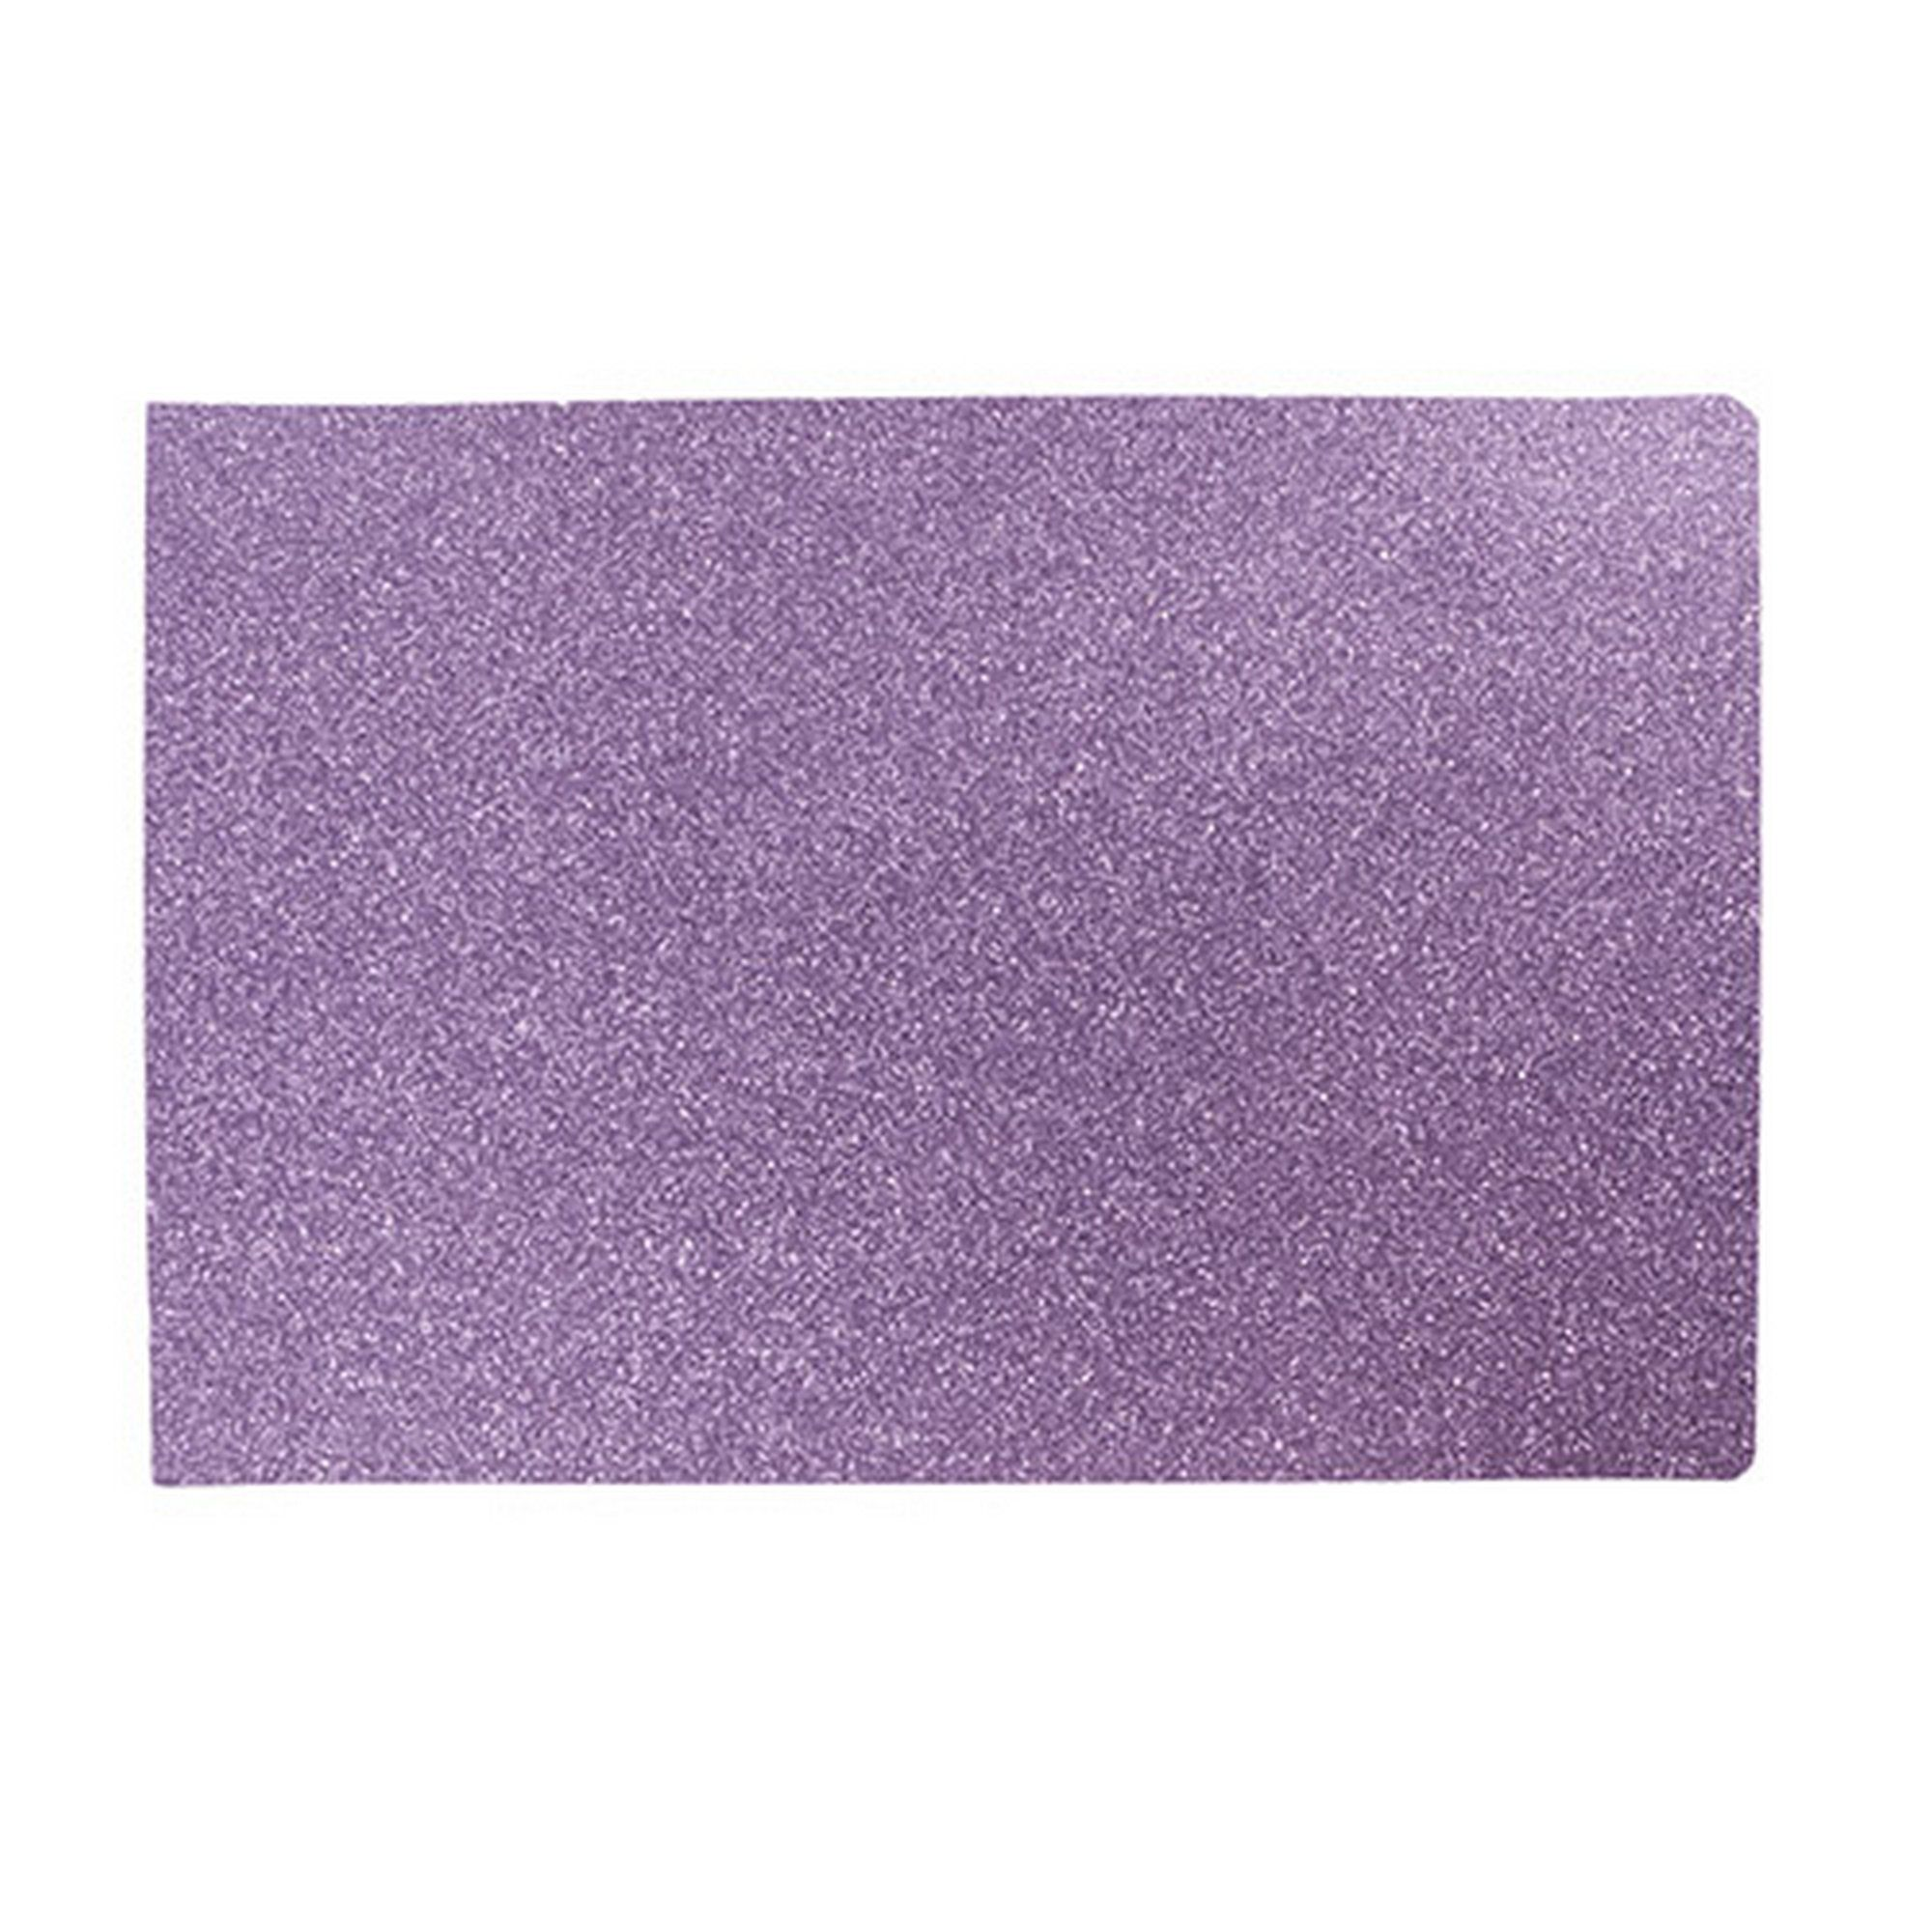 West5products Childrens Large Bright Purple Glitter Glamour Plasticated Placemat Co Uk Kitchen Home